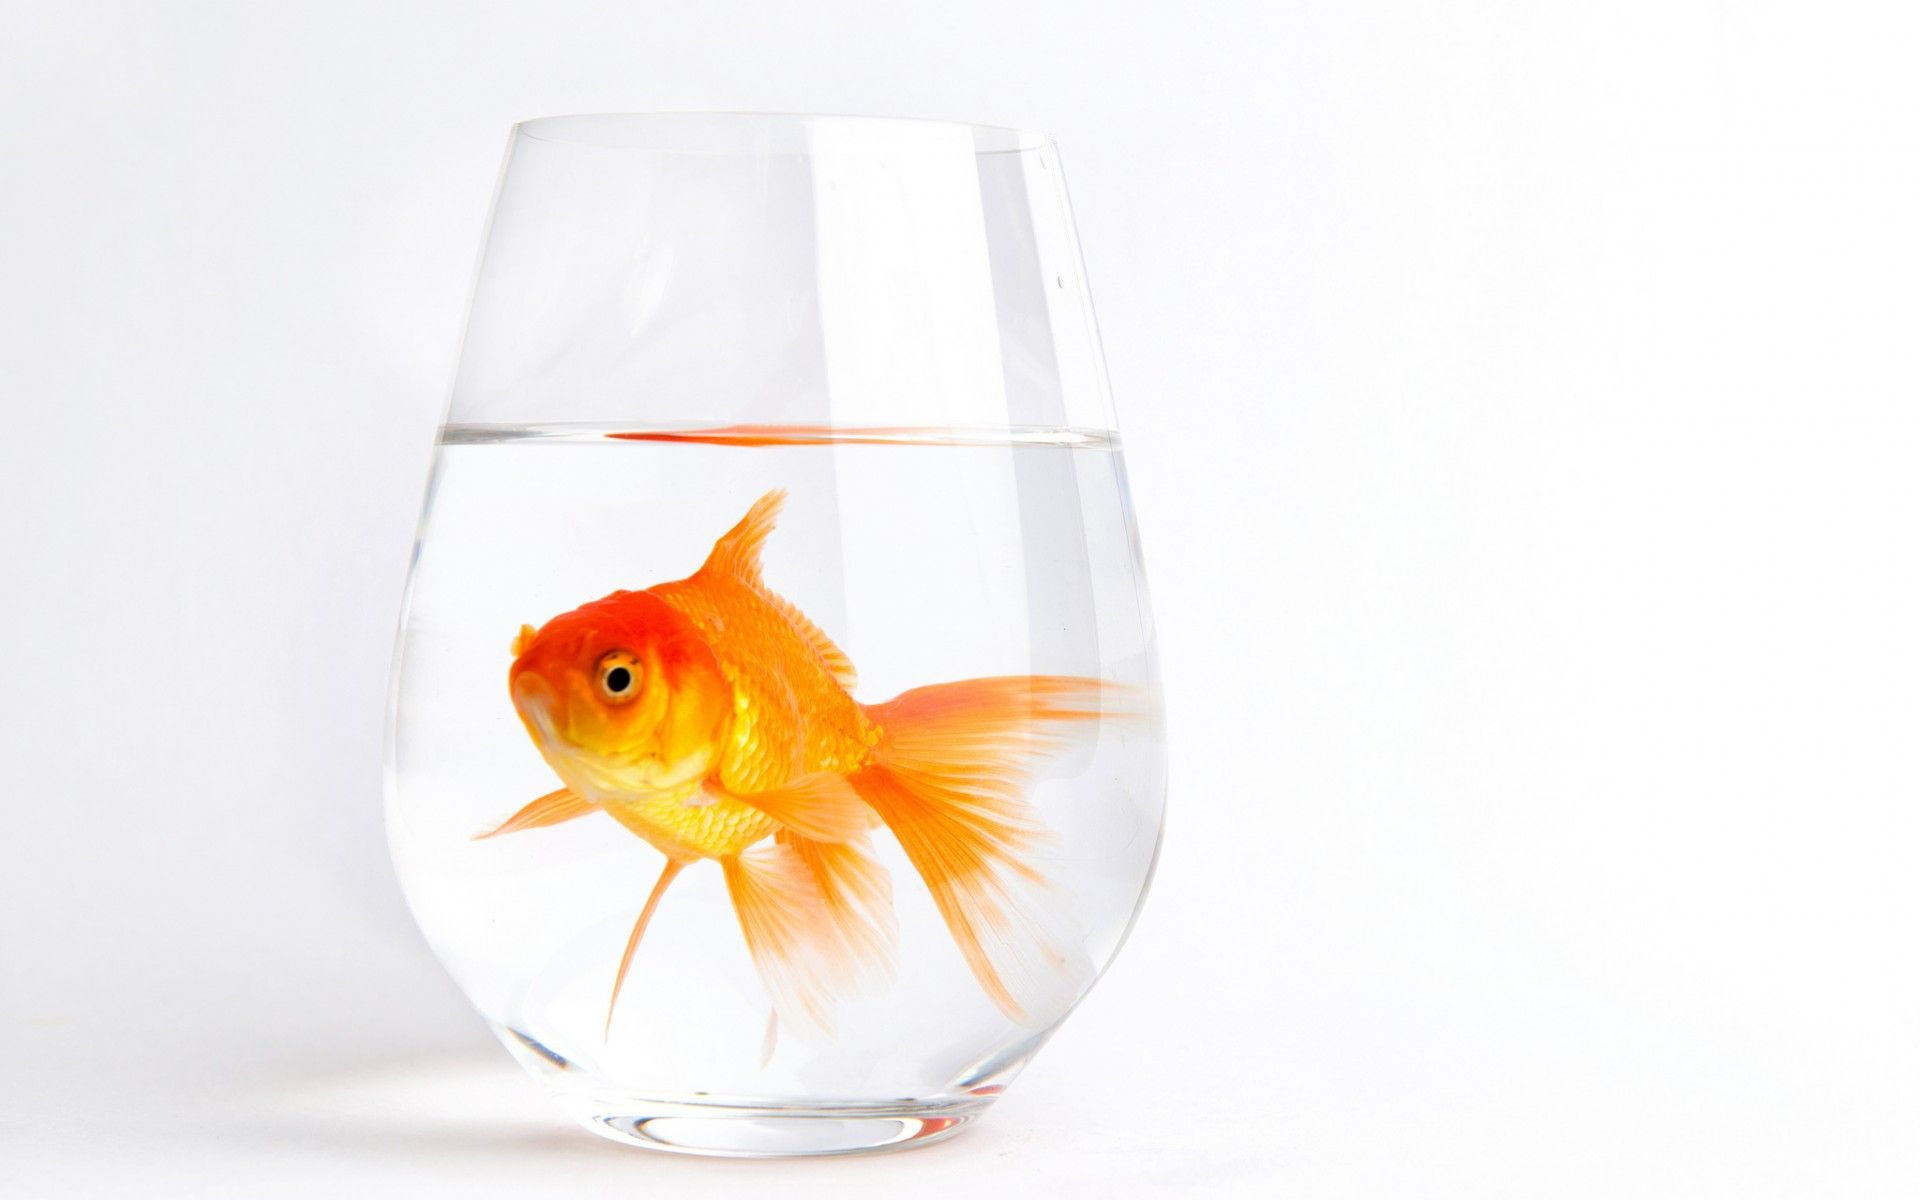 Gold fish in a glass with water. Animals Wallpapers. download ...